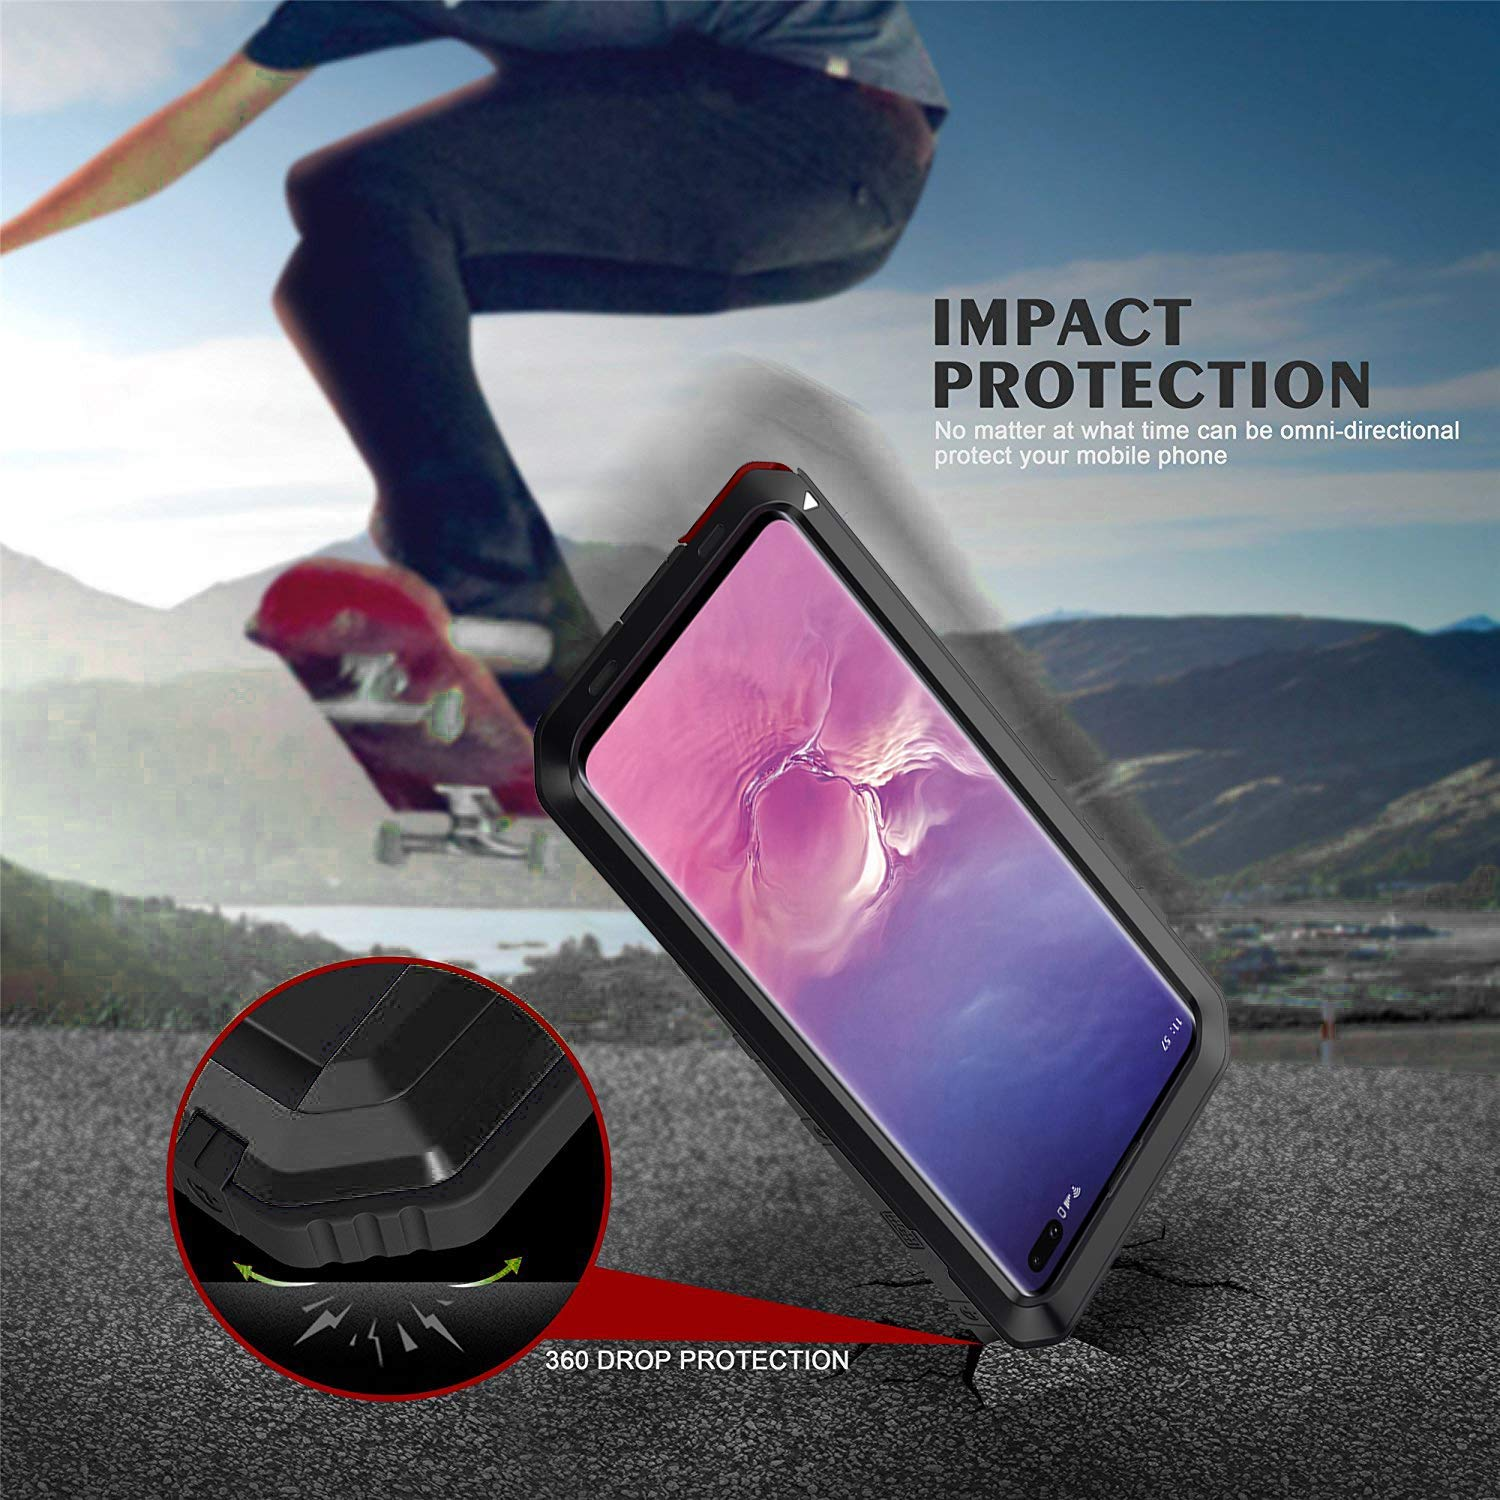 Case Heavy Duty Shockproof Dirtproof Waterproof Cover For Samsung Galaxy S8 Plus